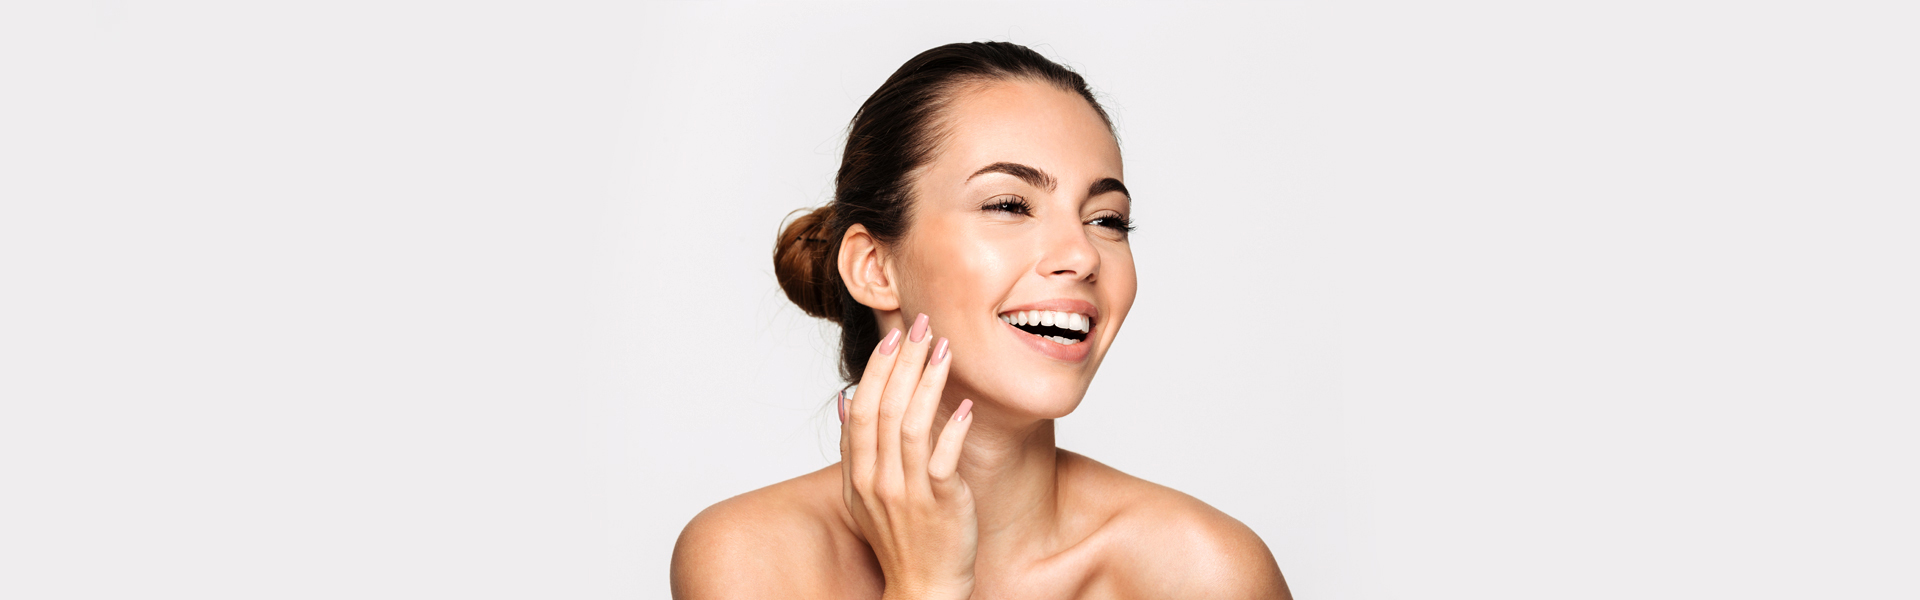 SKIN WHITENING OR SKIN BRIGHTENING, WHAT IS THE DIFFERENCE?